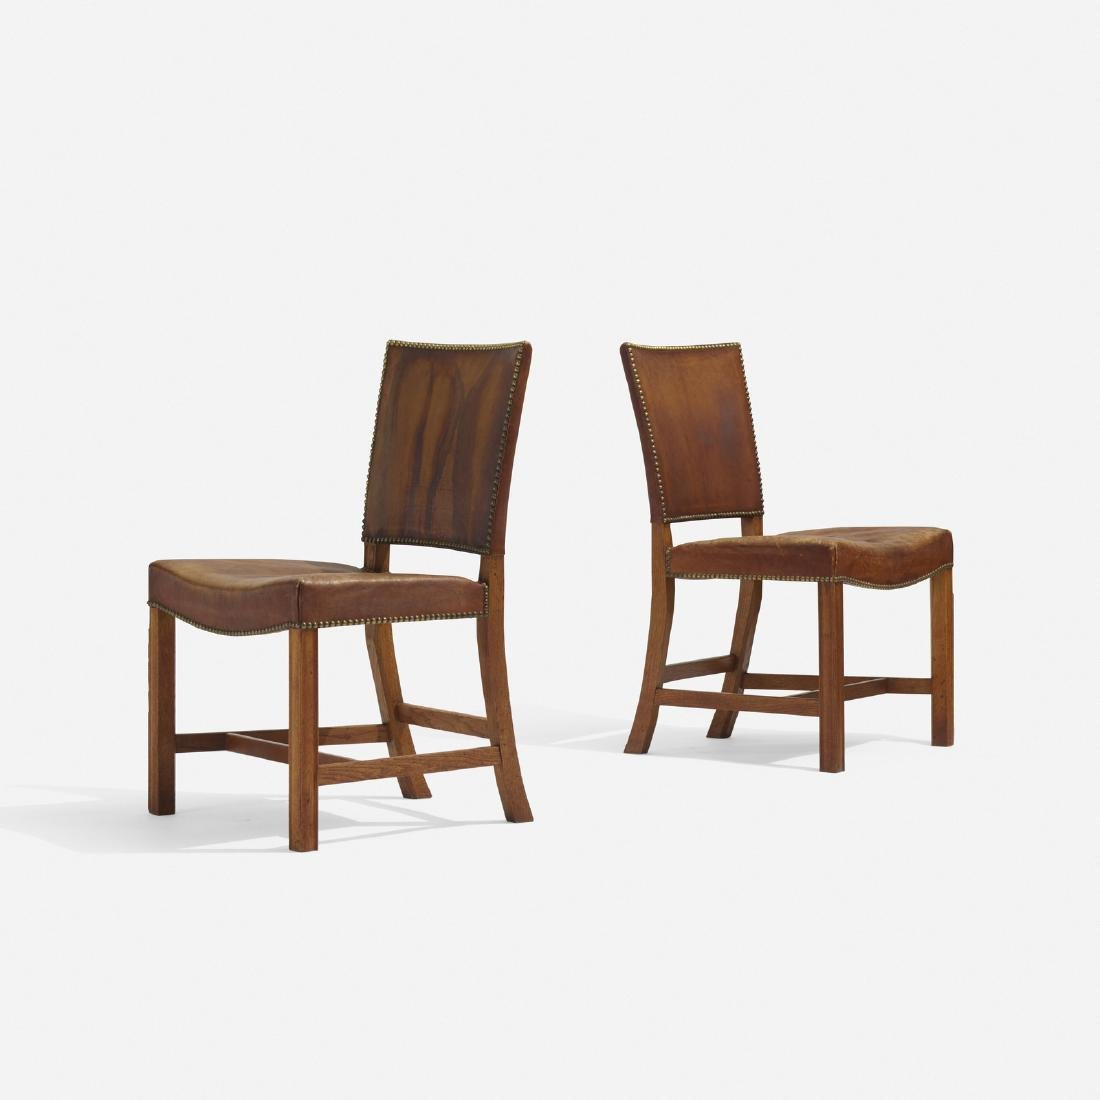 Kaare Klint, Barcelona chairs model 3758, pair - 2